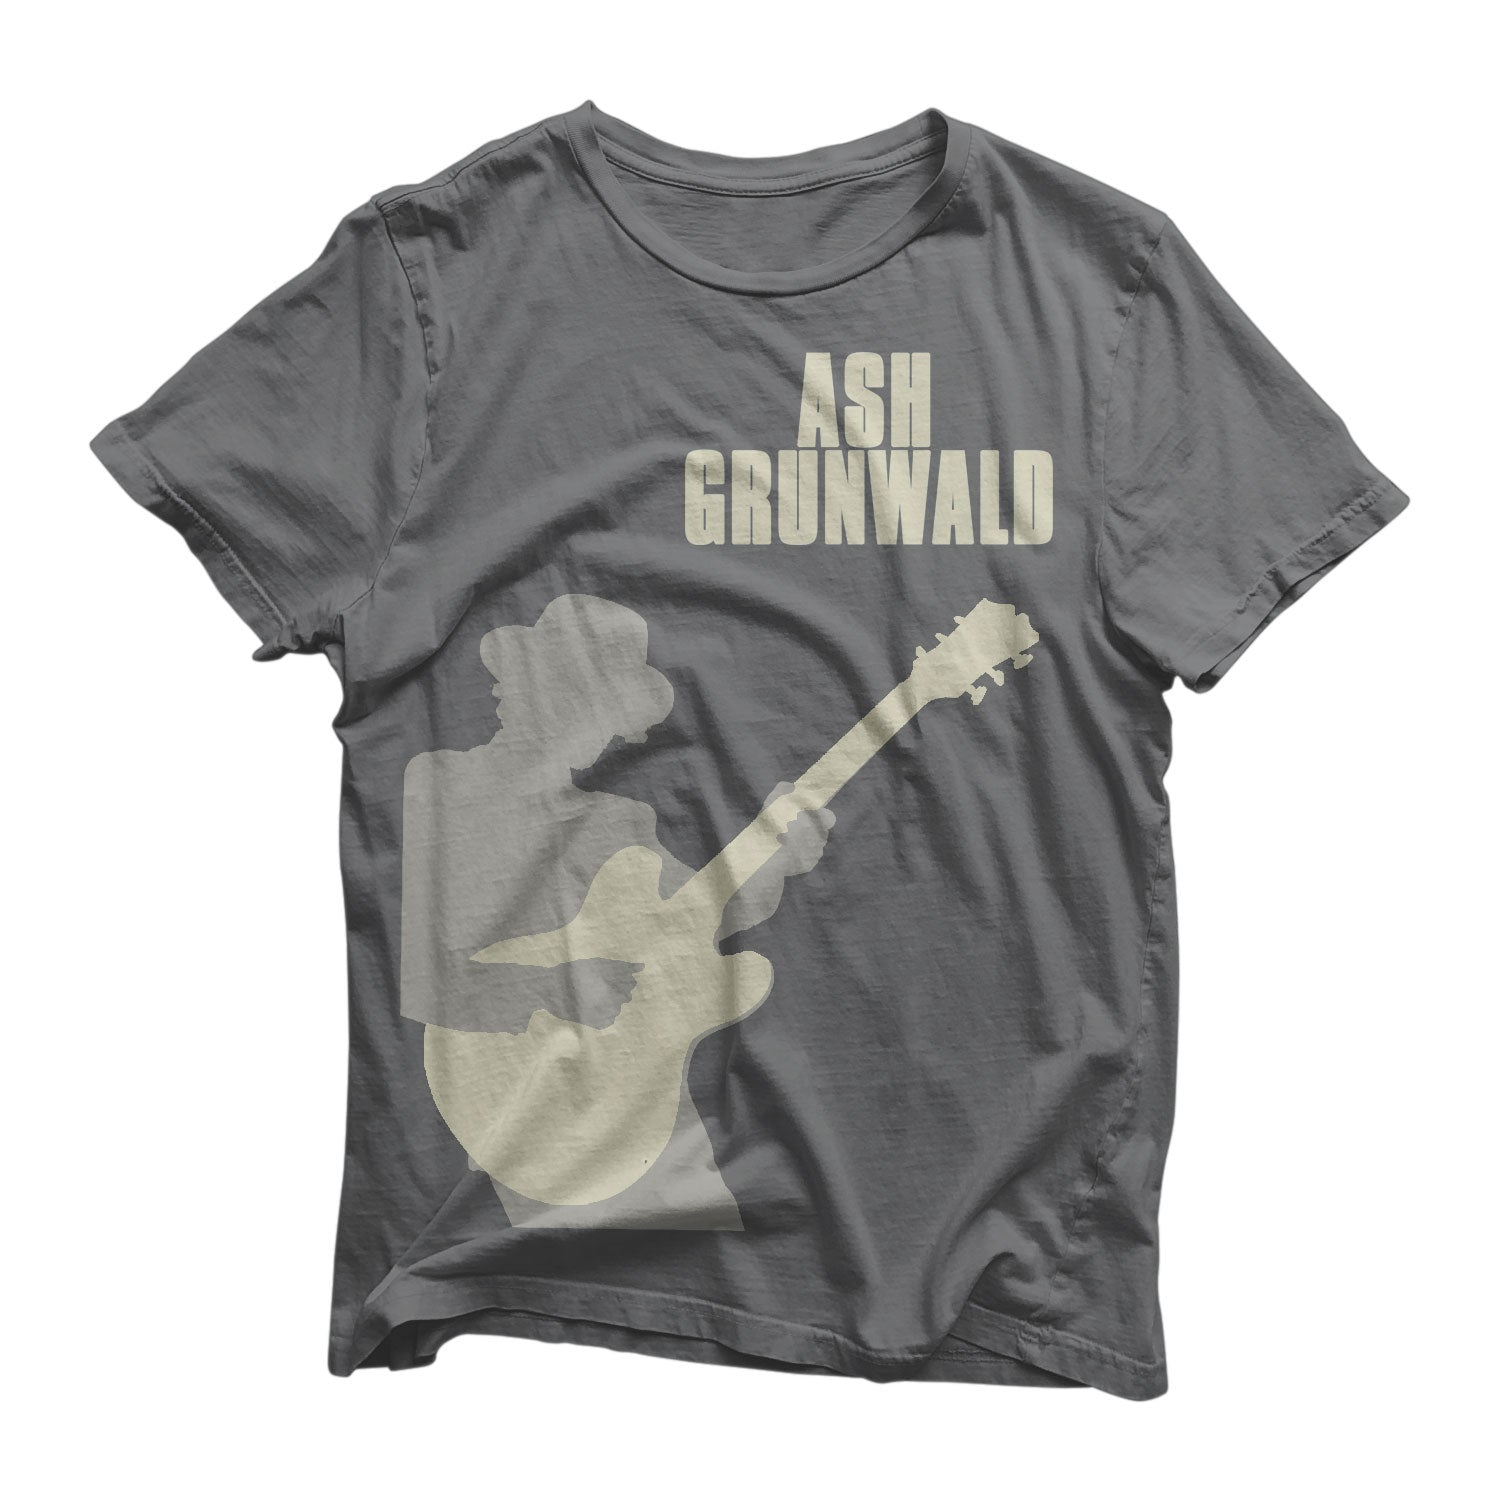 Ash Grunwald T-Shirt - Dark Grey